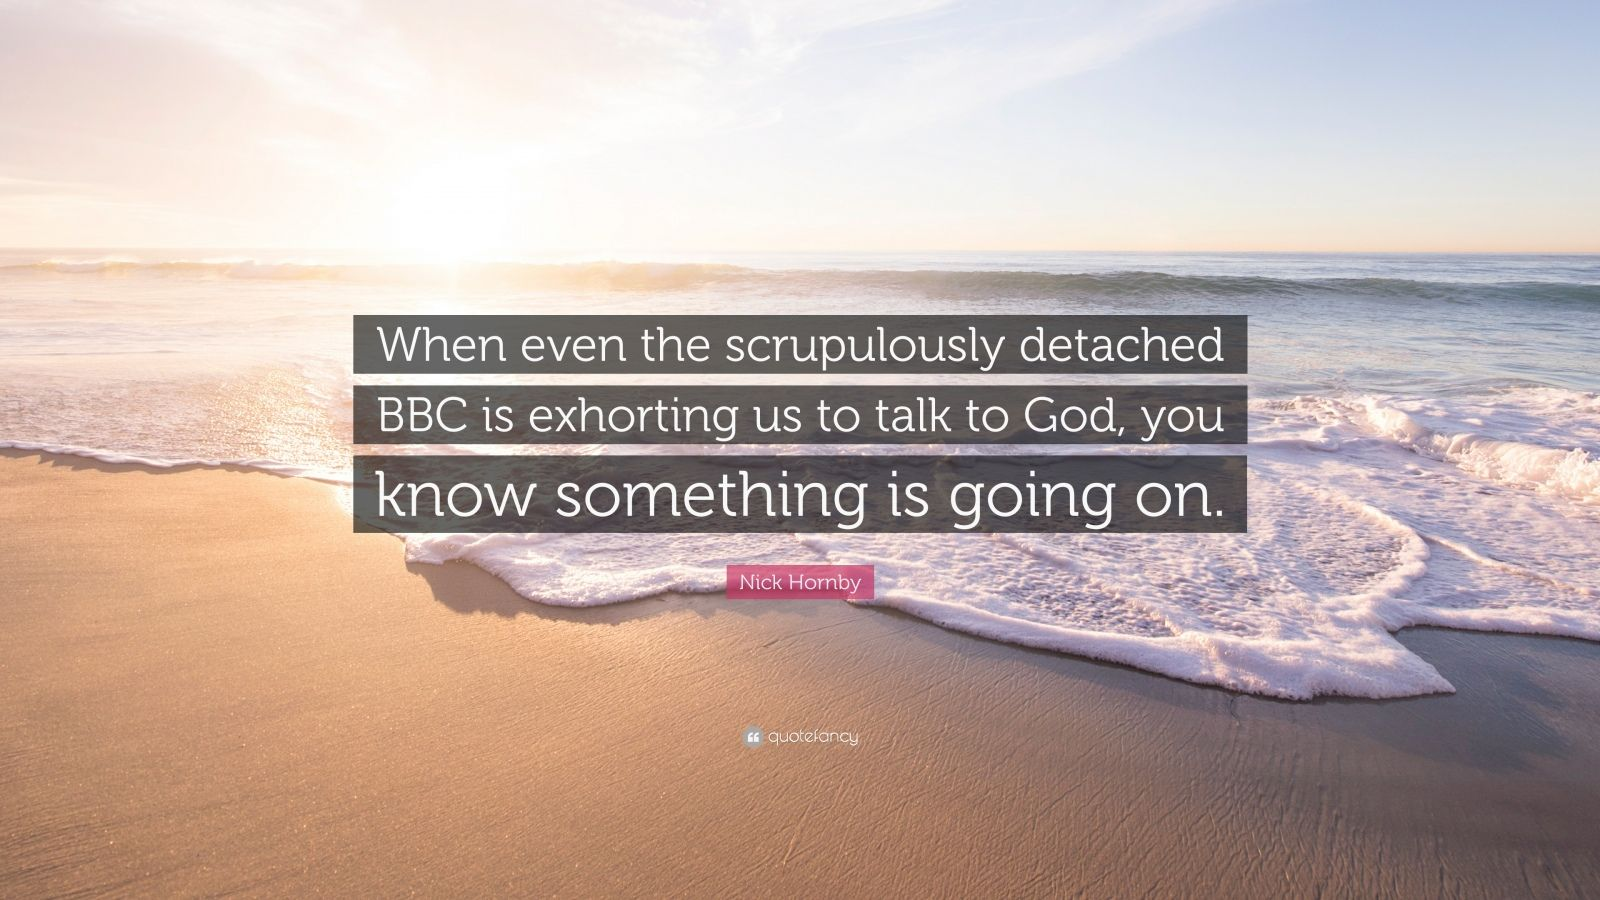 """Nick Hornby Quote: """"When even the scrupulously detached BBC is exhorting us to talk to God, you know something is going on."""""""